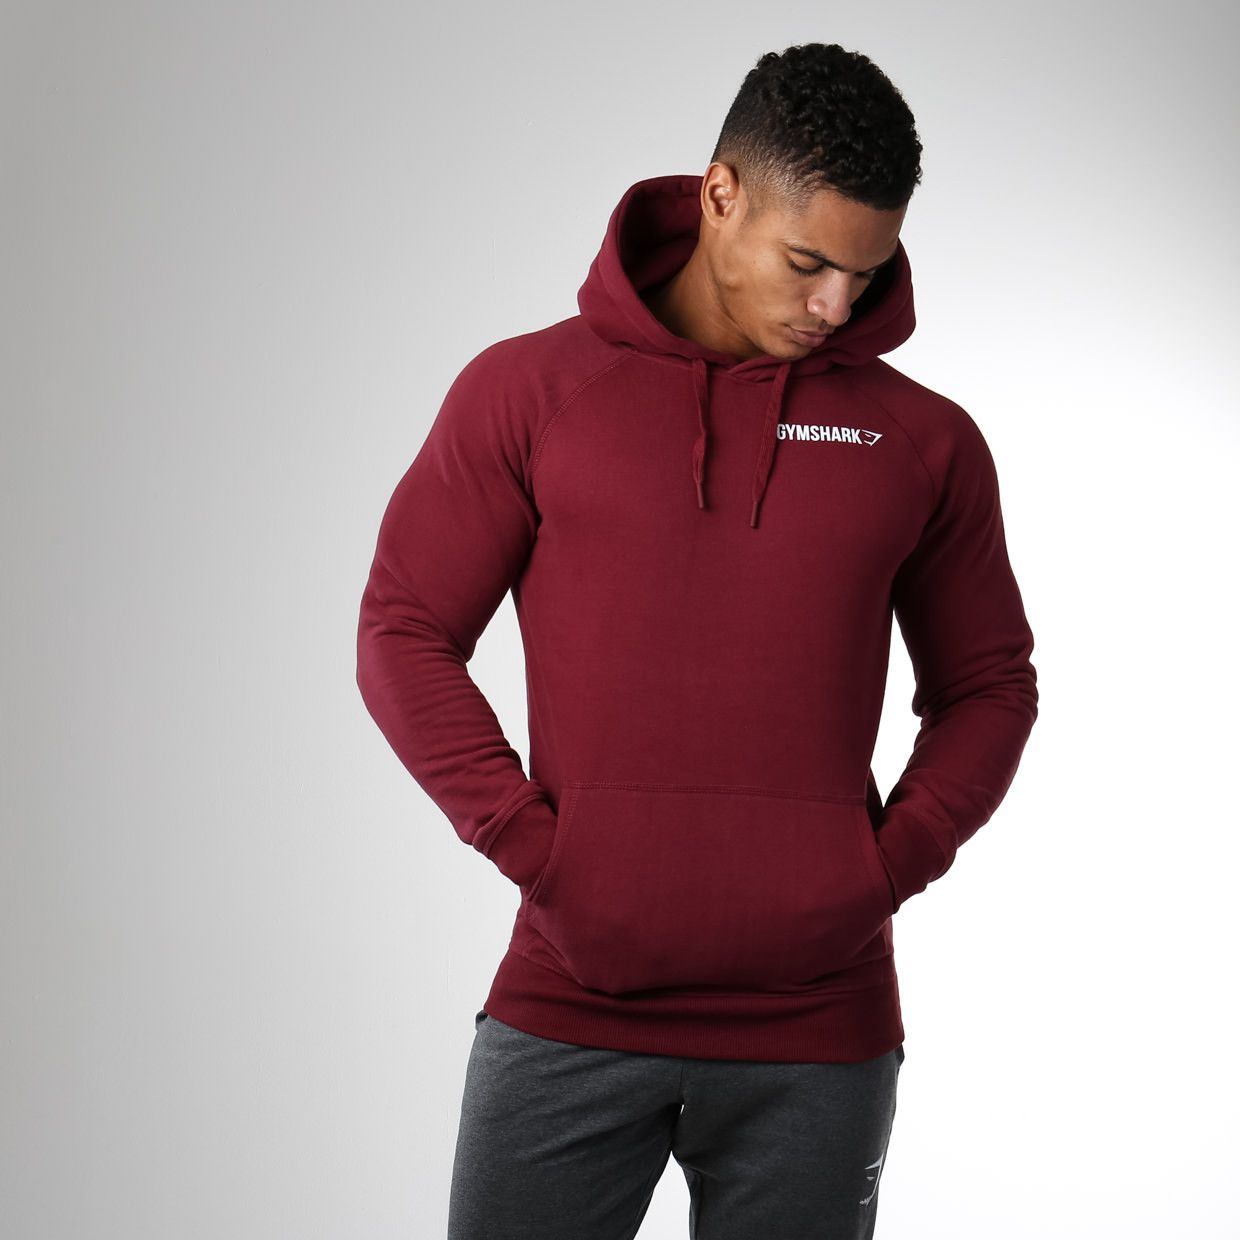 Gymshark Crest Pullover Hoodie - Port,  40. The perfect cover up as the  weather 69deabfa337b